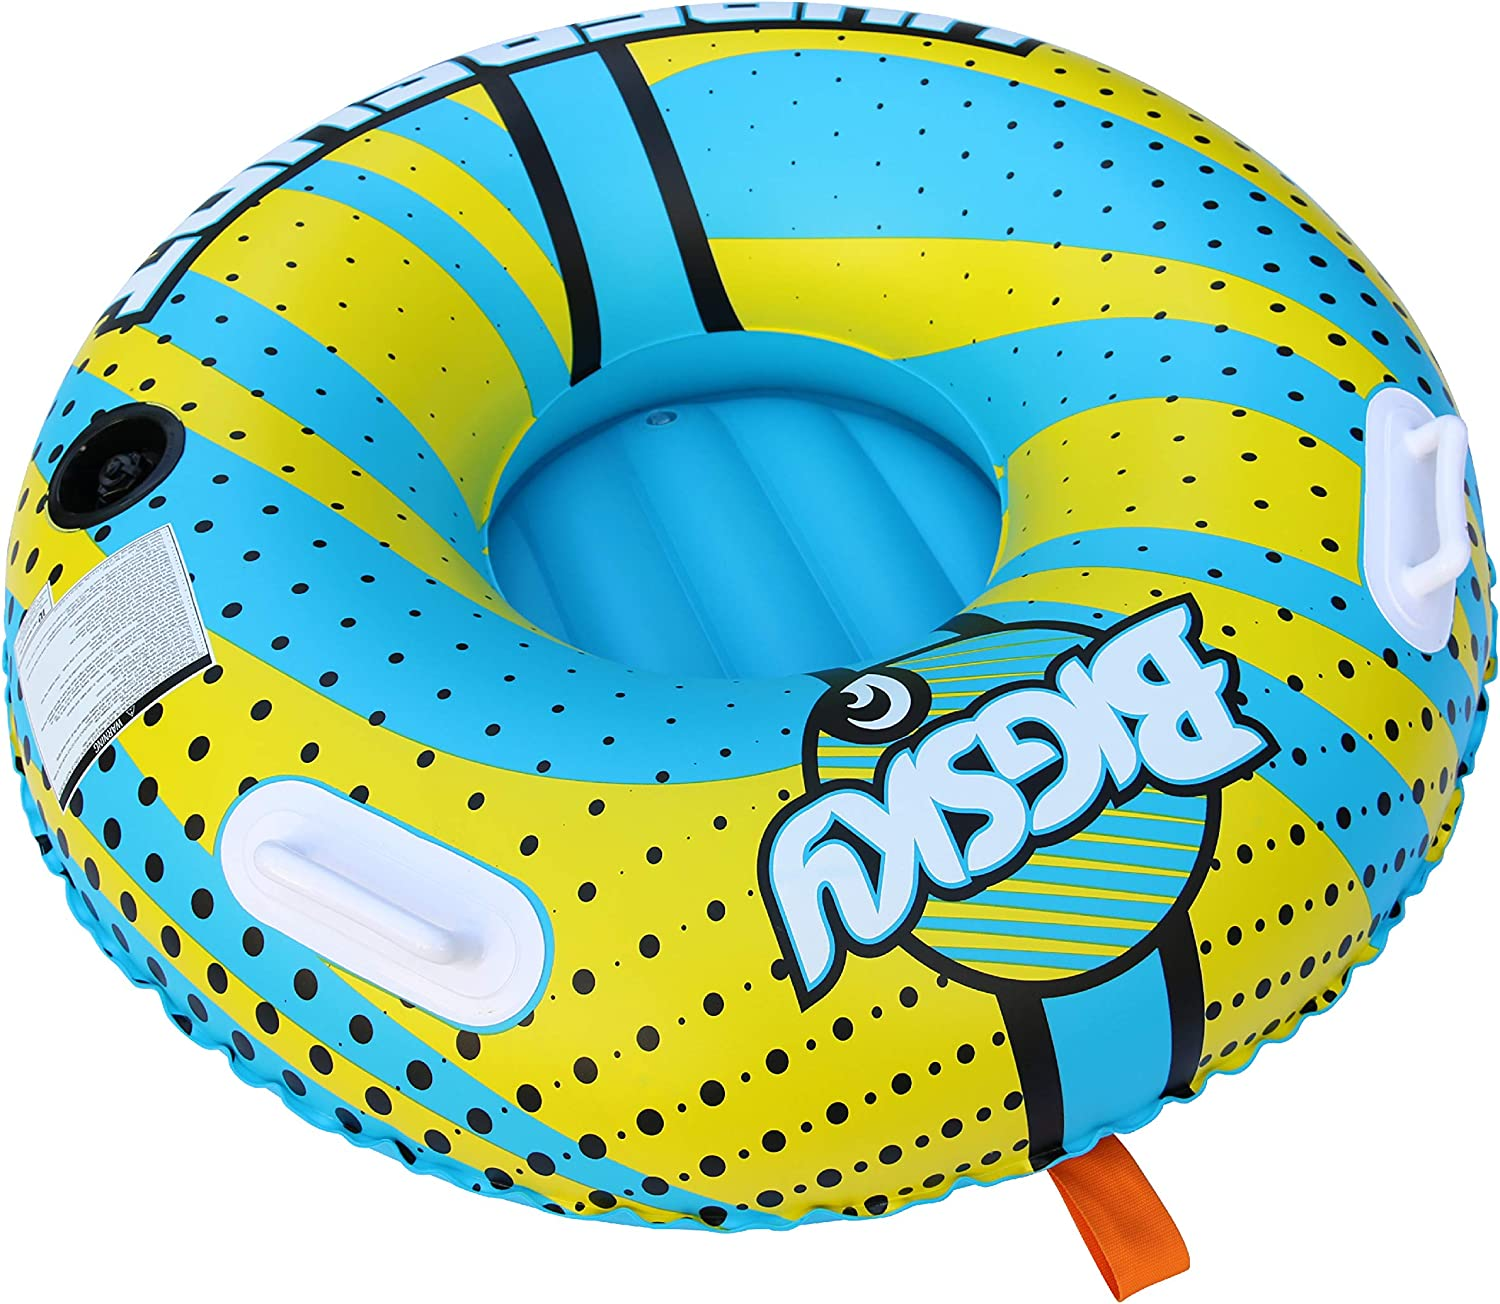 Big Sky Hypershot Towable Tube for 1 Person  Roomy, Durable Boating Tubes for Lake, Beach, River, Snow  Fun Watersports Towables  Quick Inflation and Deflation  One Person Boat Toys and Floats